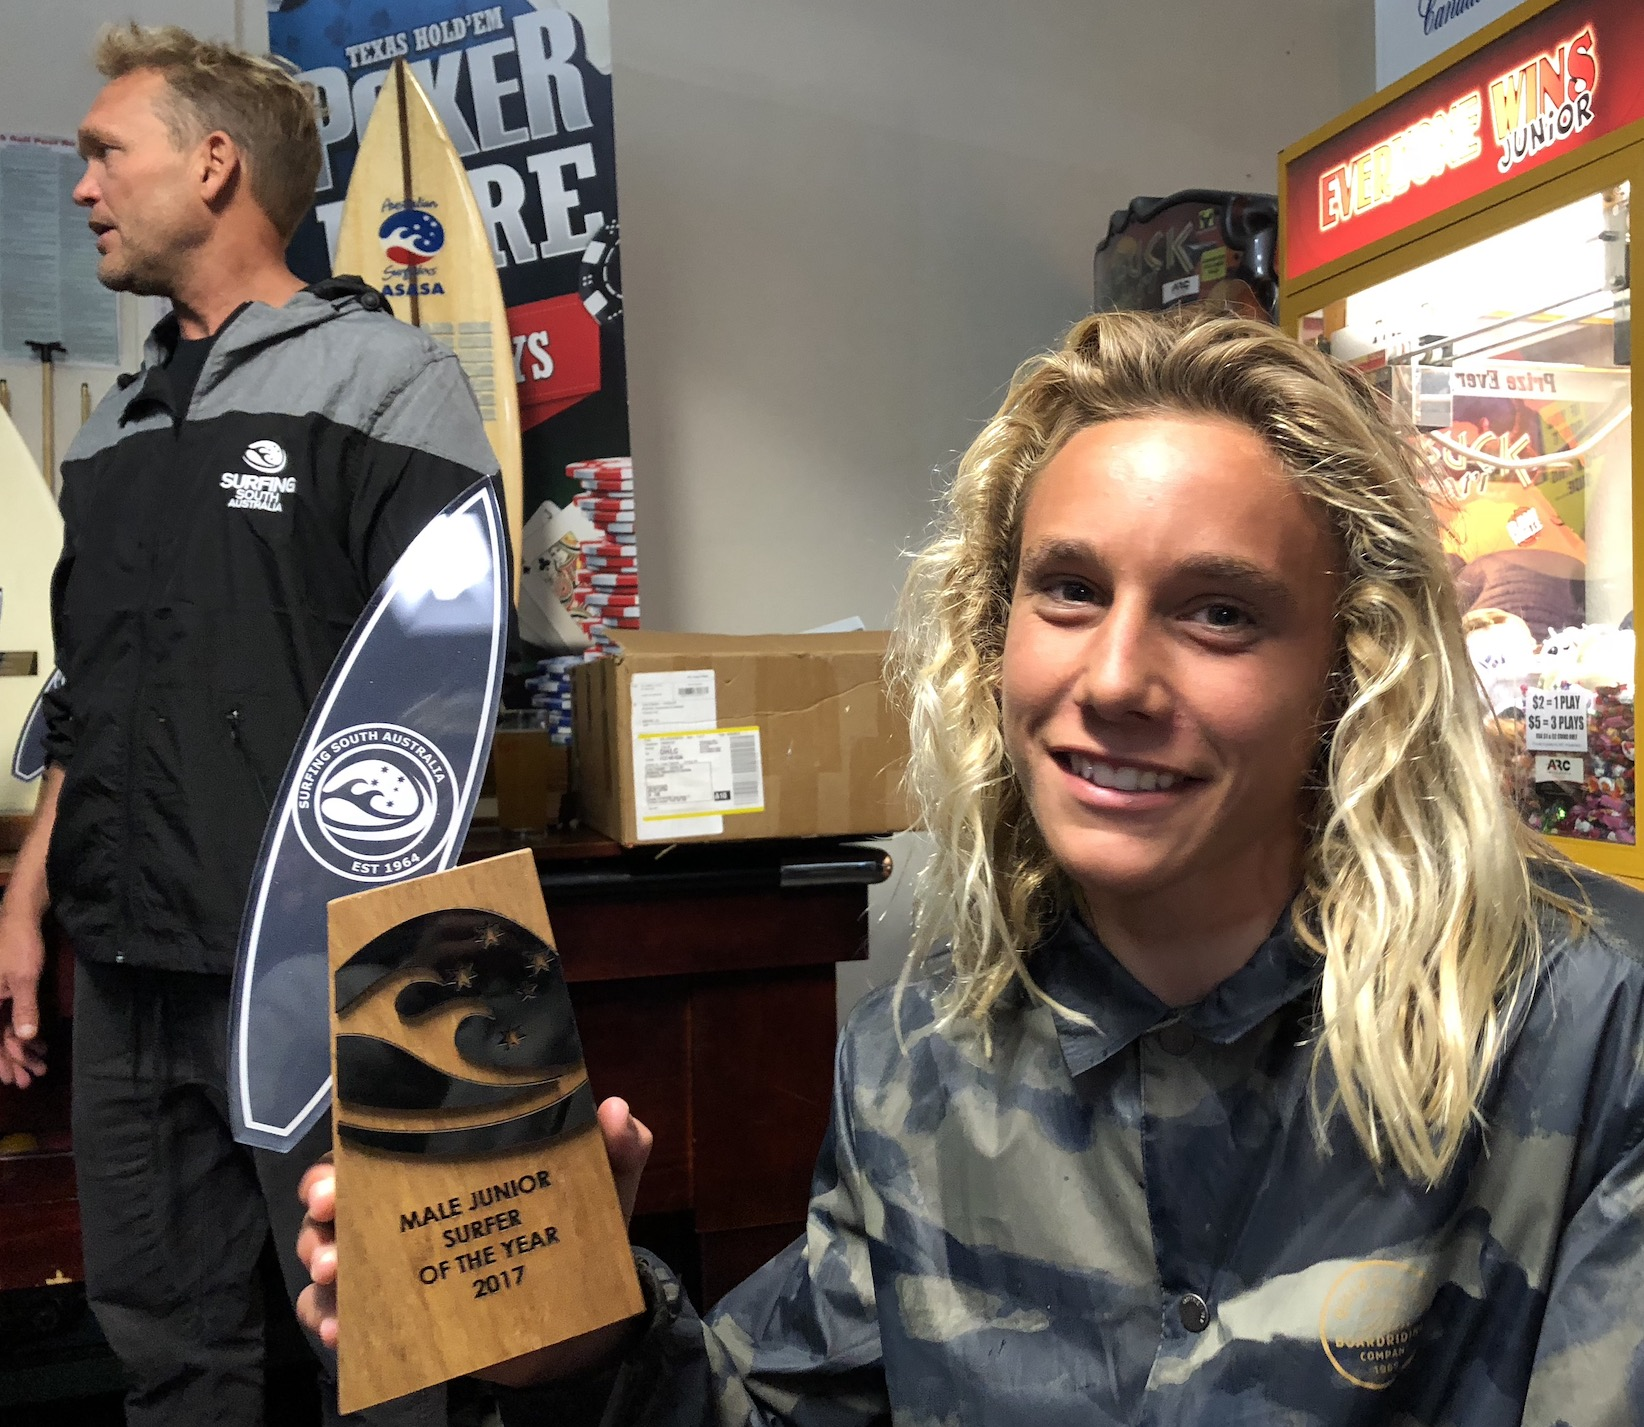 Harry Green Male Junior Surfer Of The Year